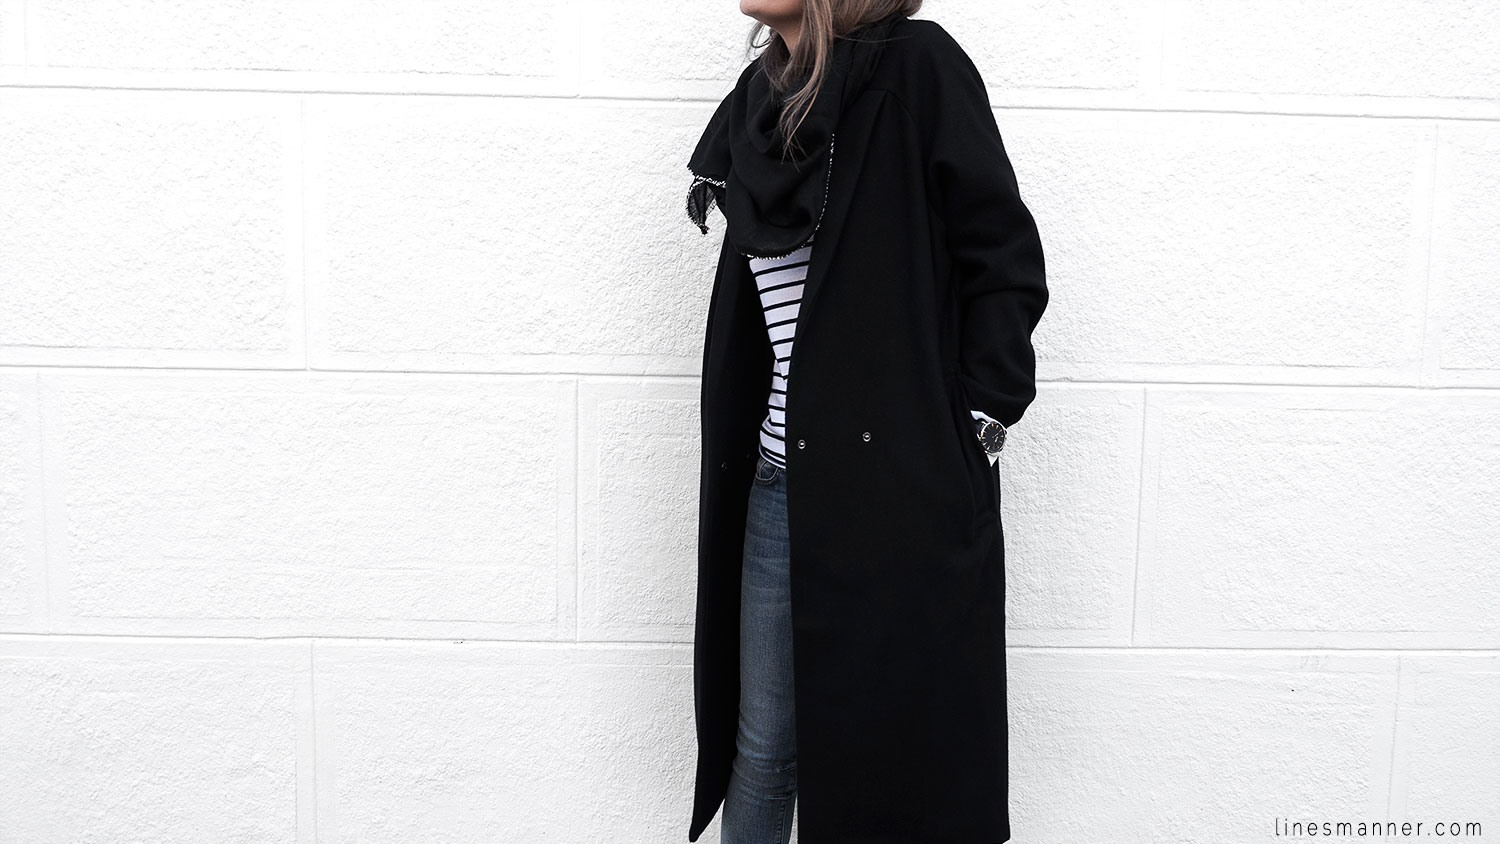 Lines-Manner-Timeless-Refined-Comfort-Minimal-Textures-Fall-Details-Simplicity-Stripes-Marinière-Essential-Outfit-Basic-Staple-Denim10